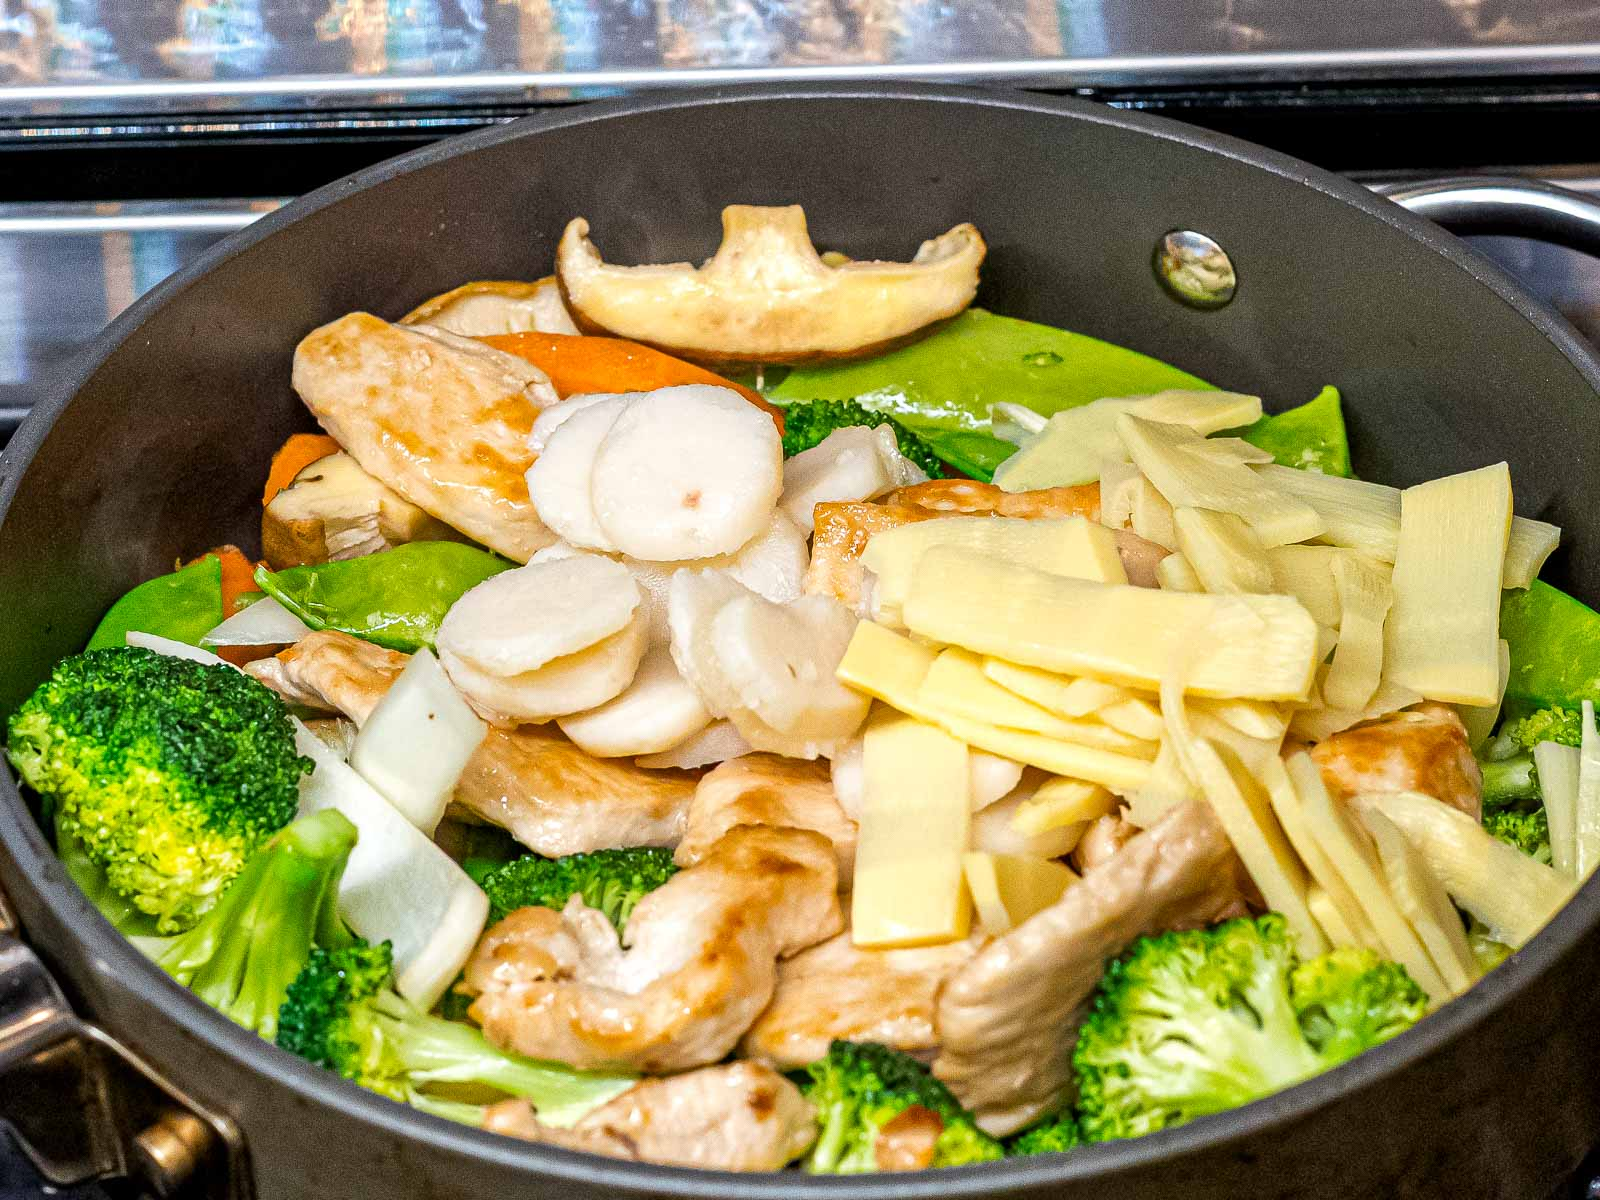 chicken, mushrooms, bamboo shoots, water chestnuts stir frying in a pan